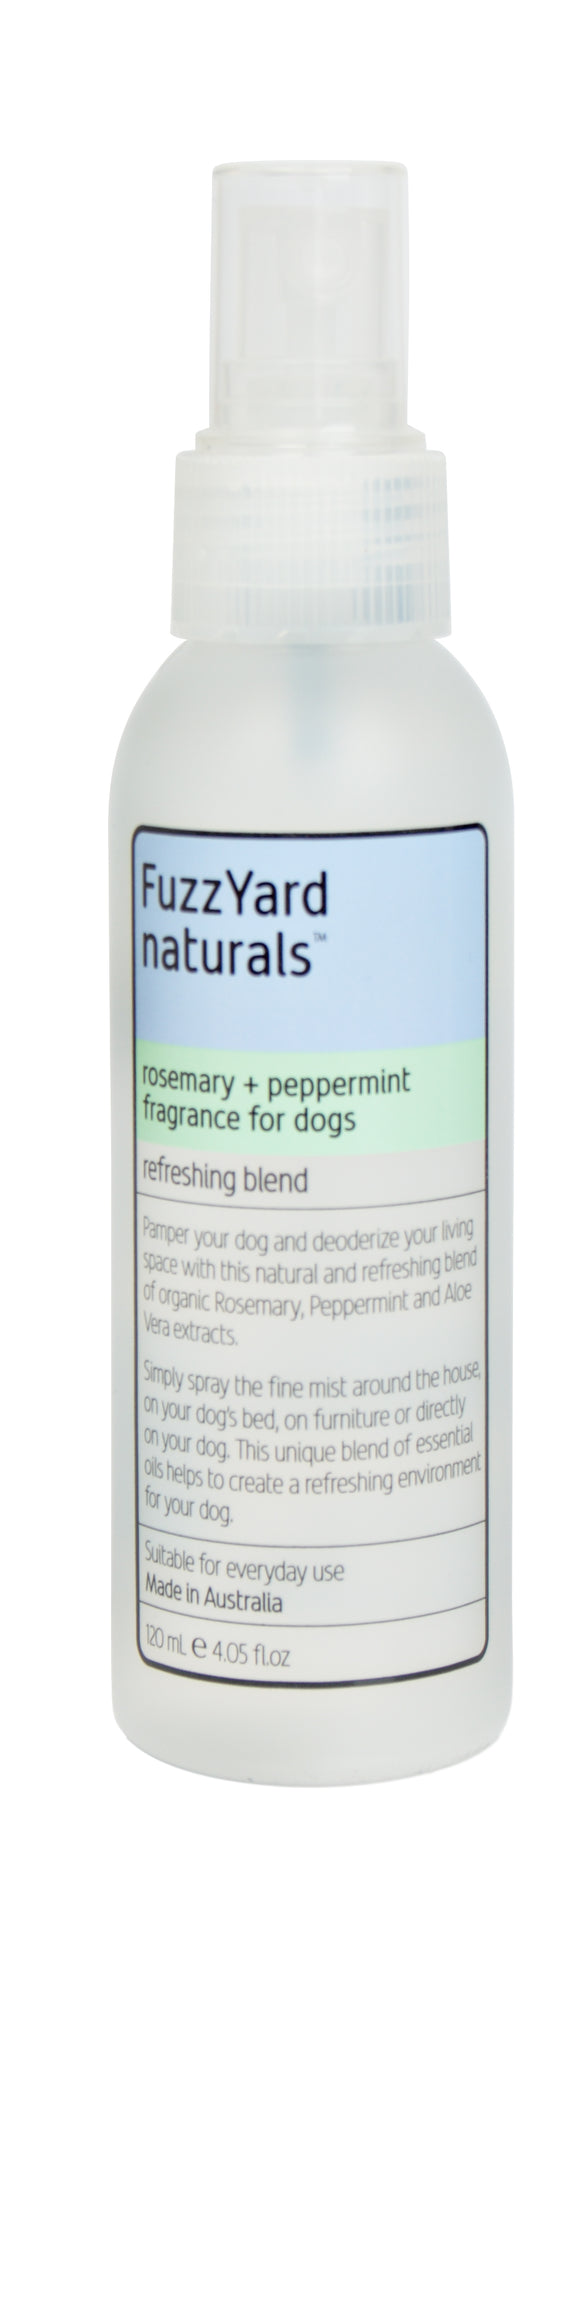 FUZZYARD Rosemary + Peppermint Refreshing Spray (120ml)